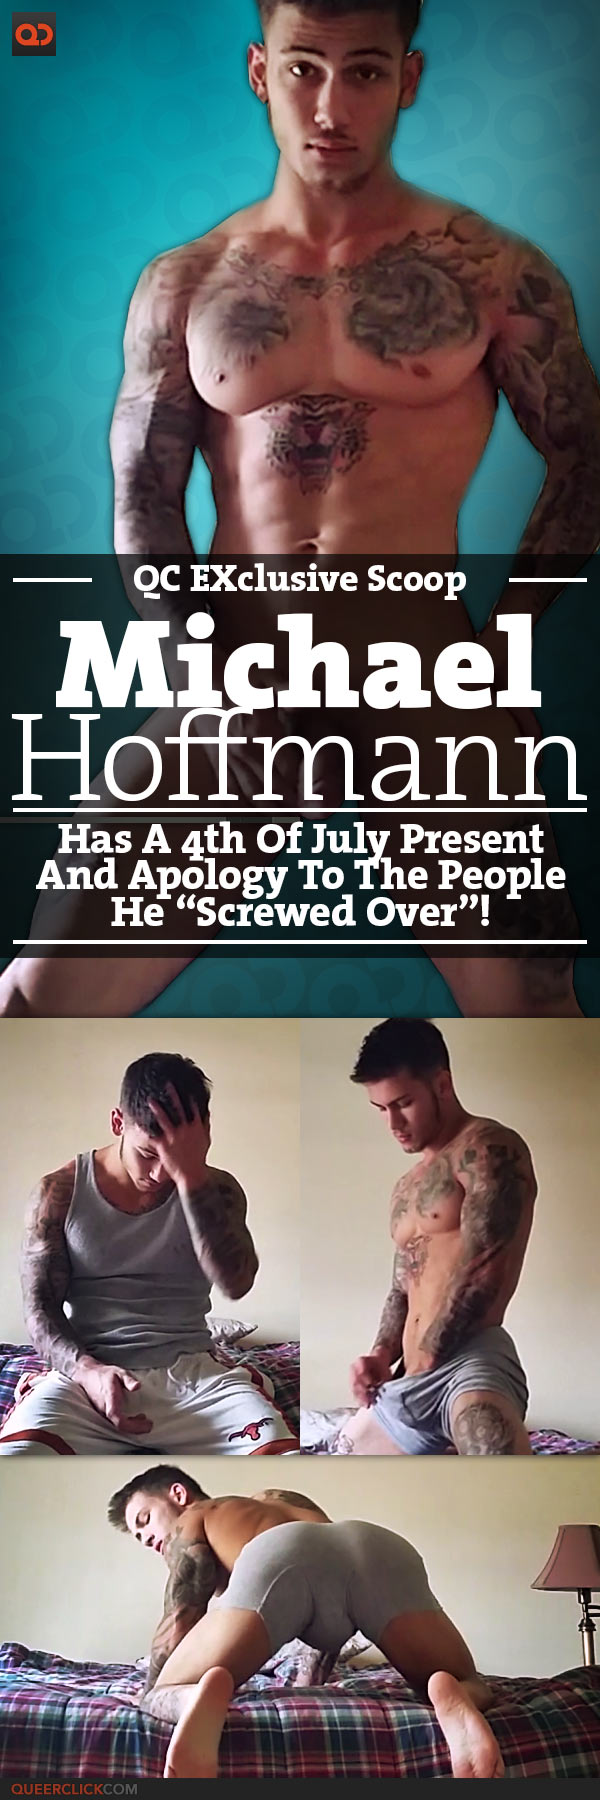 "QC Exclusive Scoop: Michael Hoffman Has A 4th Of July Present And Apology To The People He ""Screwed Over"""